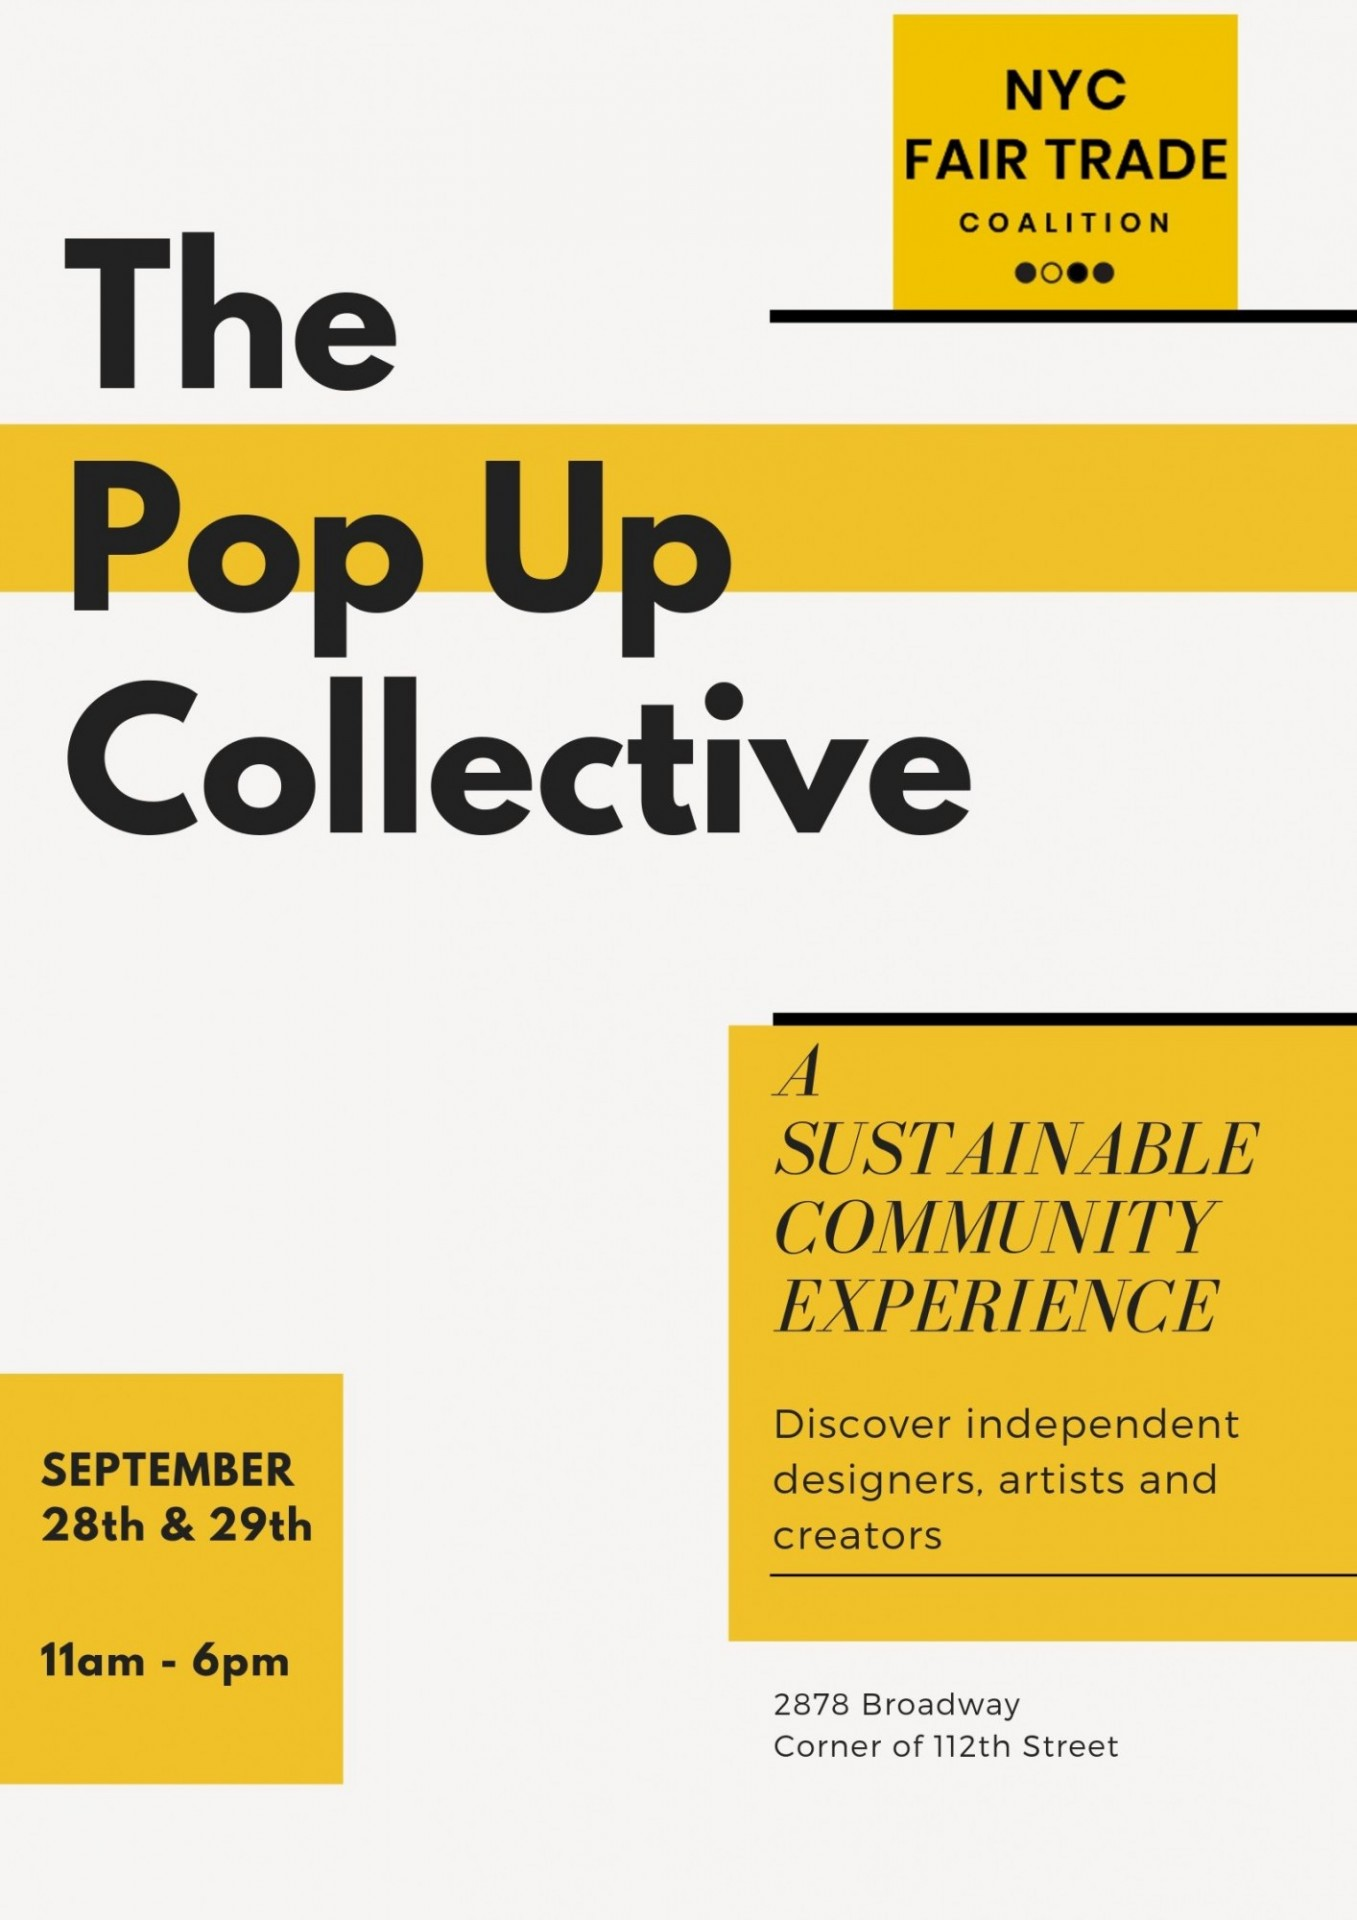 A flyer advertising the Pop-Up Collective market